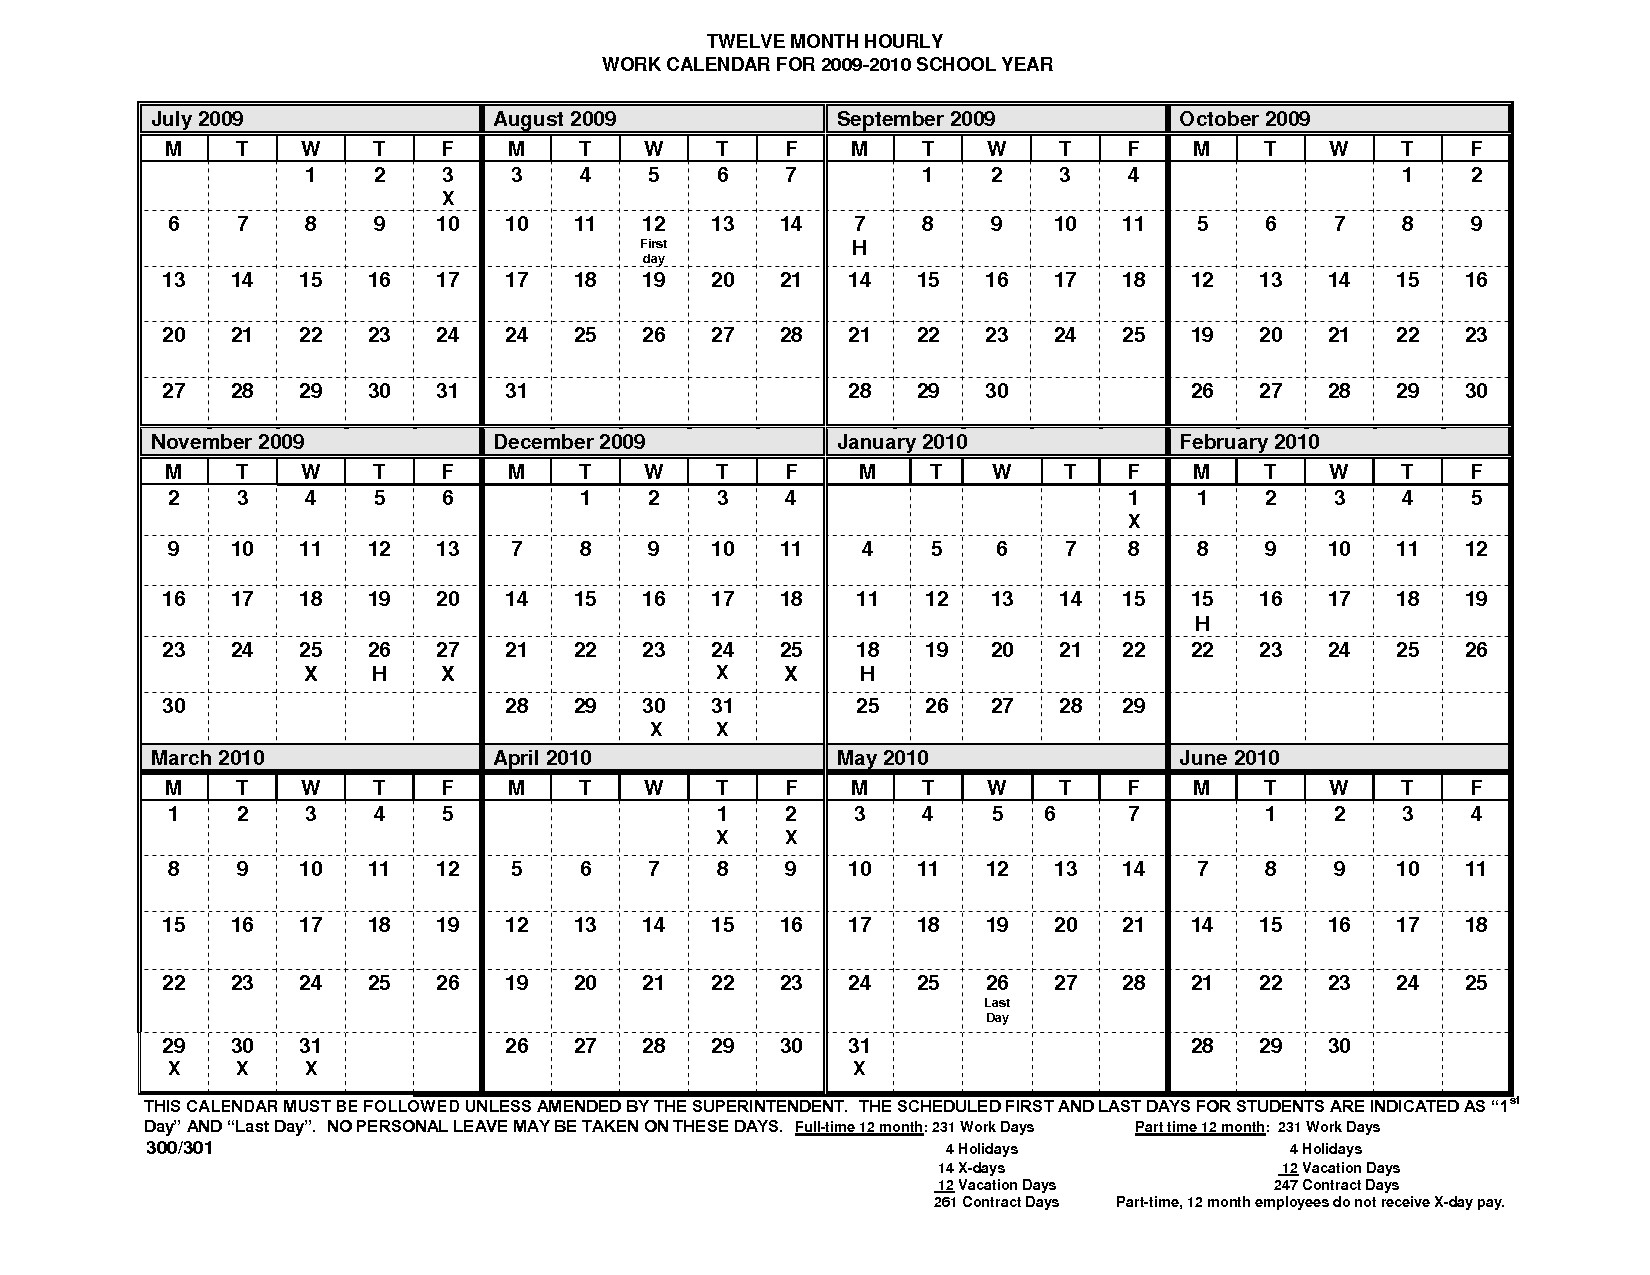 Template For Calendar With 12 Months On One Page | Template Calendar inside Template For Calendar With 12 Months On One Page